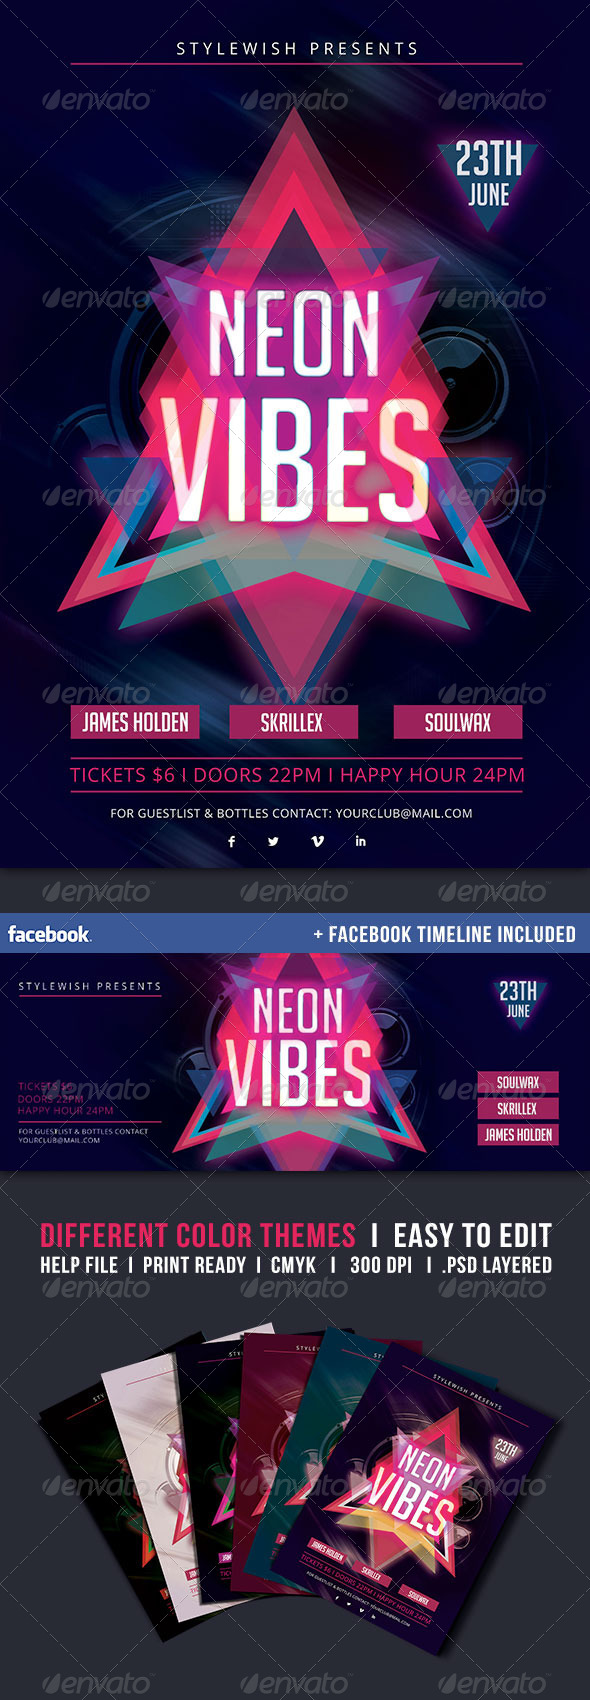 GraphicRiver Neon Vibes Flyer & Fb Timeline 5285076